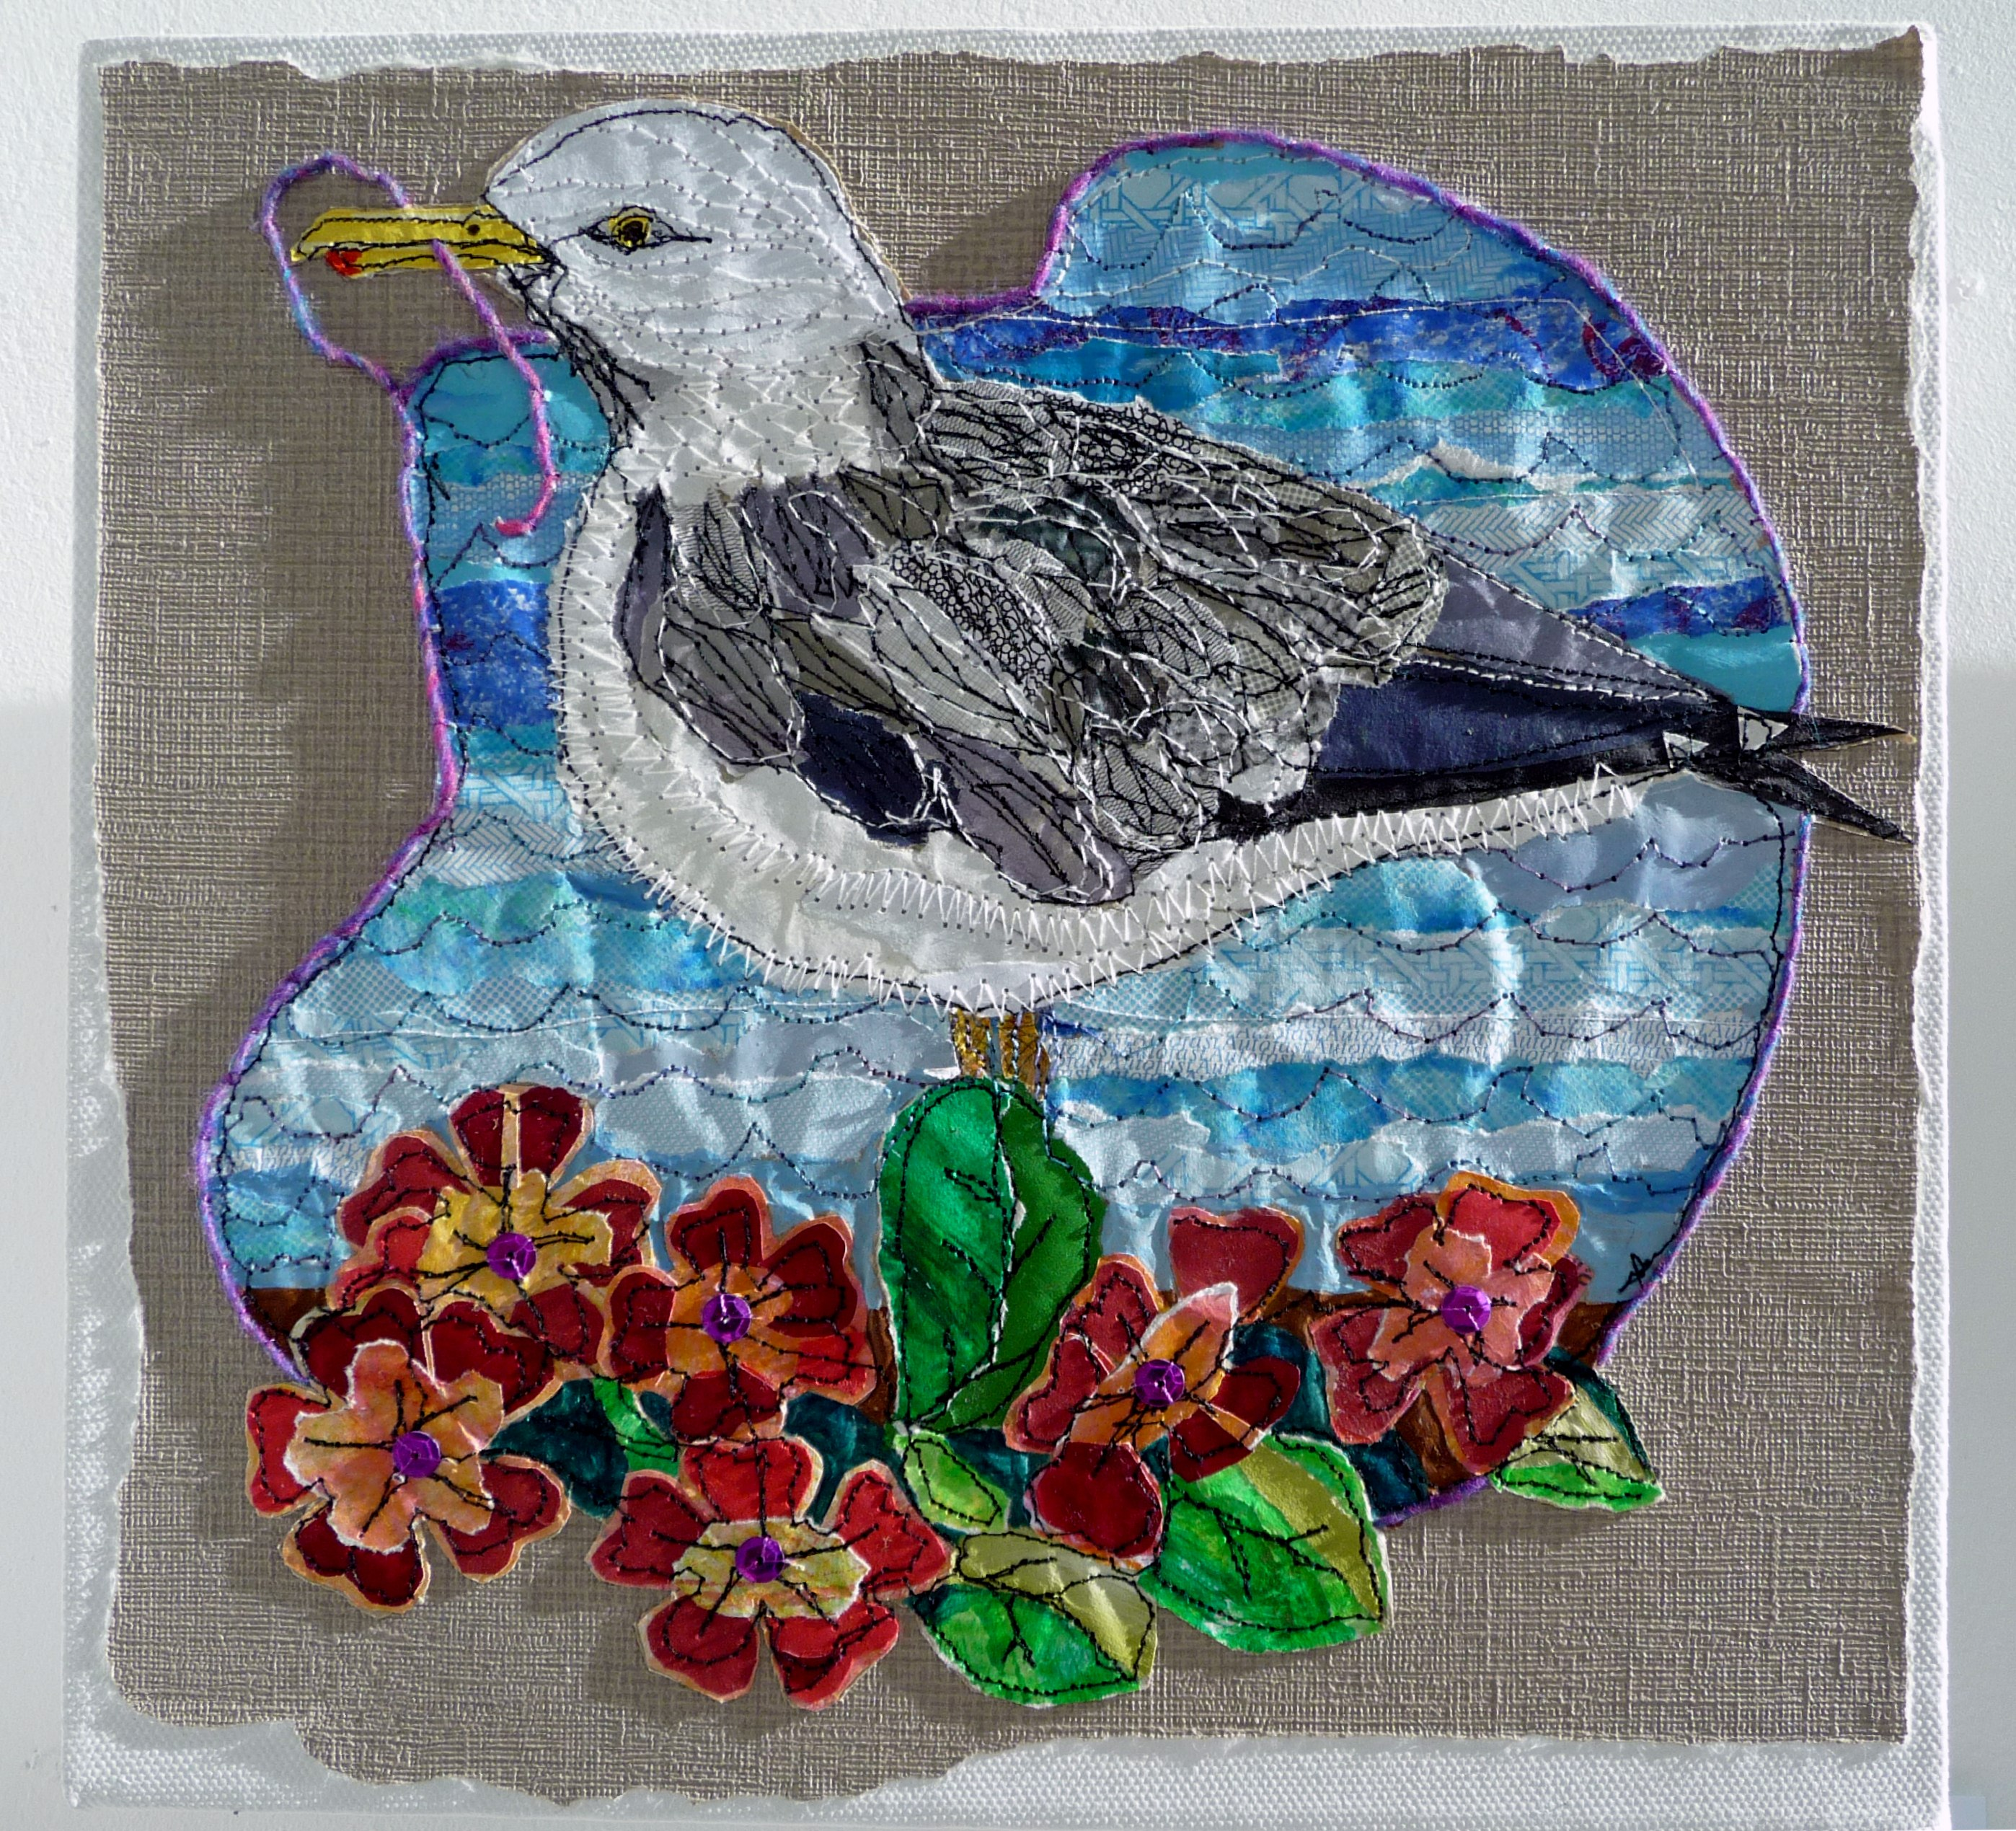 SEAGULL LEARNS TO SEW by Sue Boardman, stitched paper